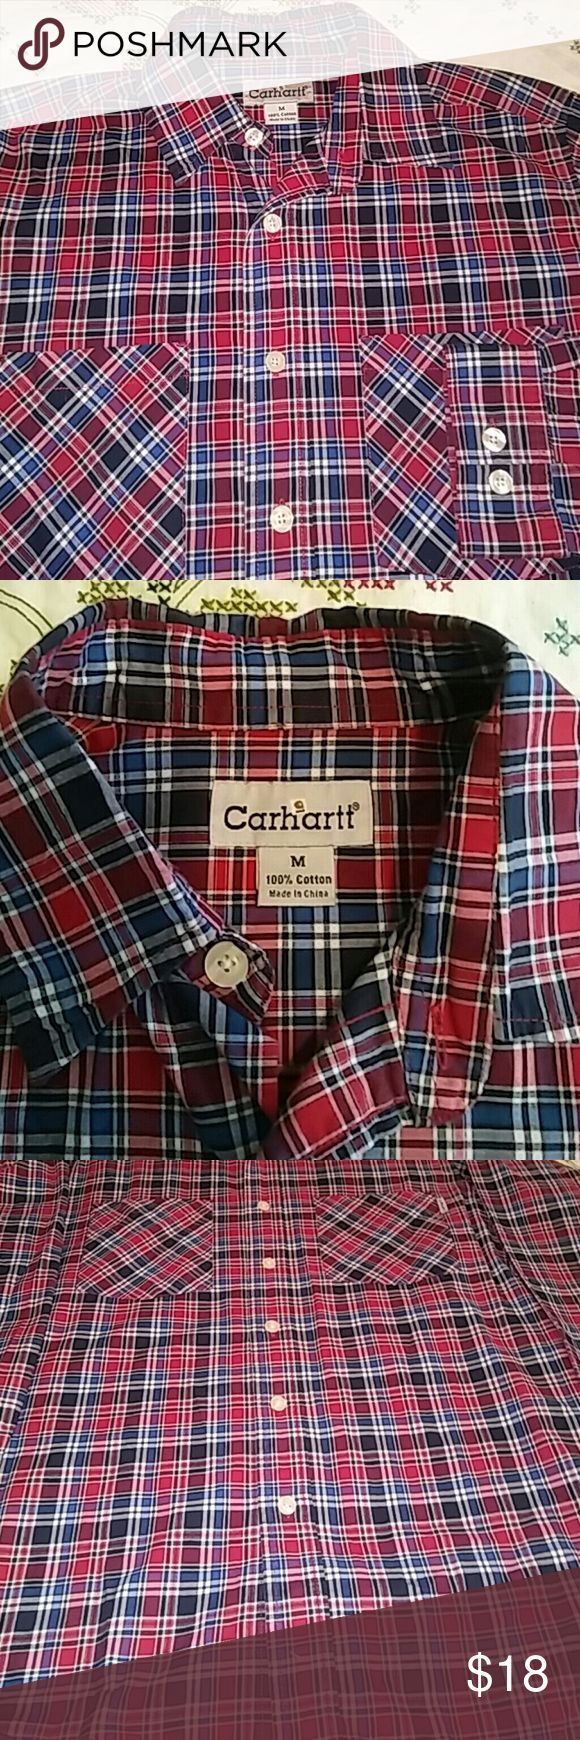 Carhartt Work Shirt Get the job done stylin' it in this Red, White and Blue Carhartt shirt. Features two pockets, pearline buttons, and a nice soft feel from 100% cotton. Only worn a few times. Carhartt Shirts Casual Button Down Shirts